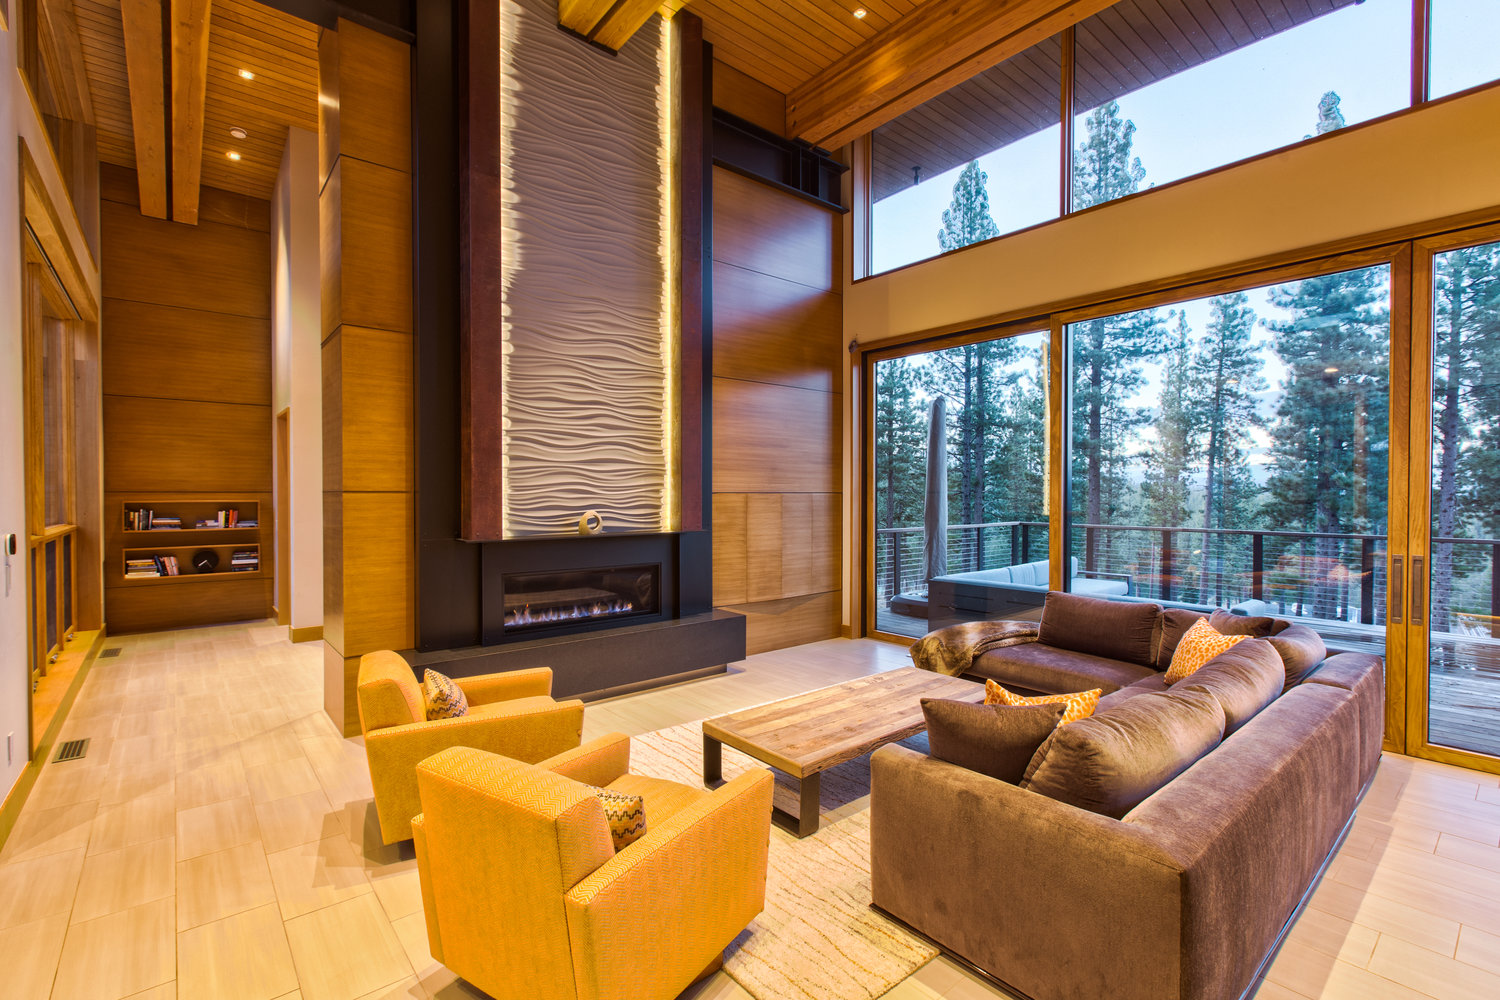 Top Interior Designers in Reno